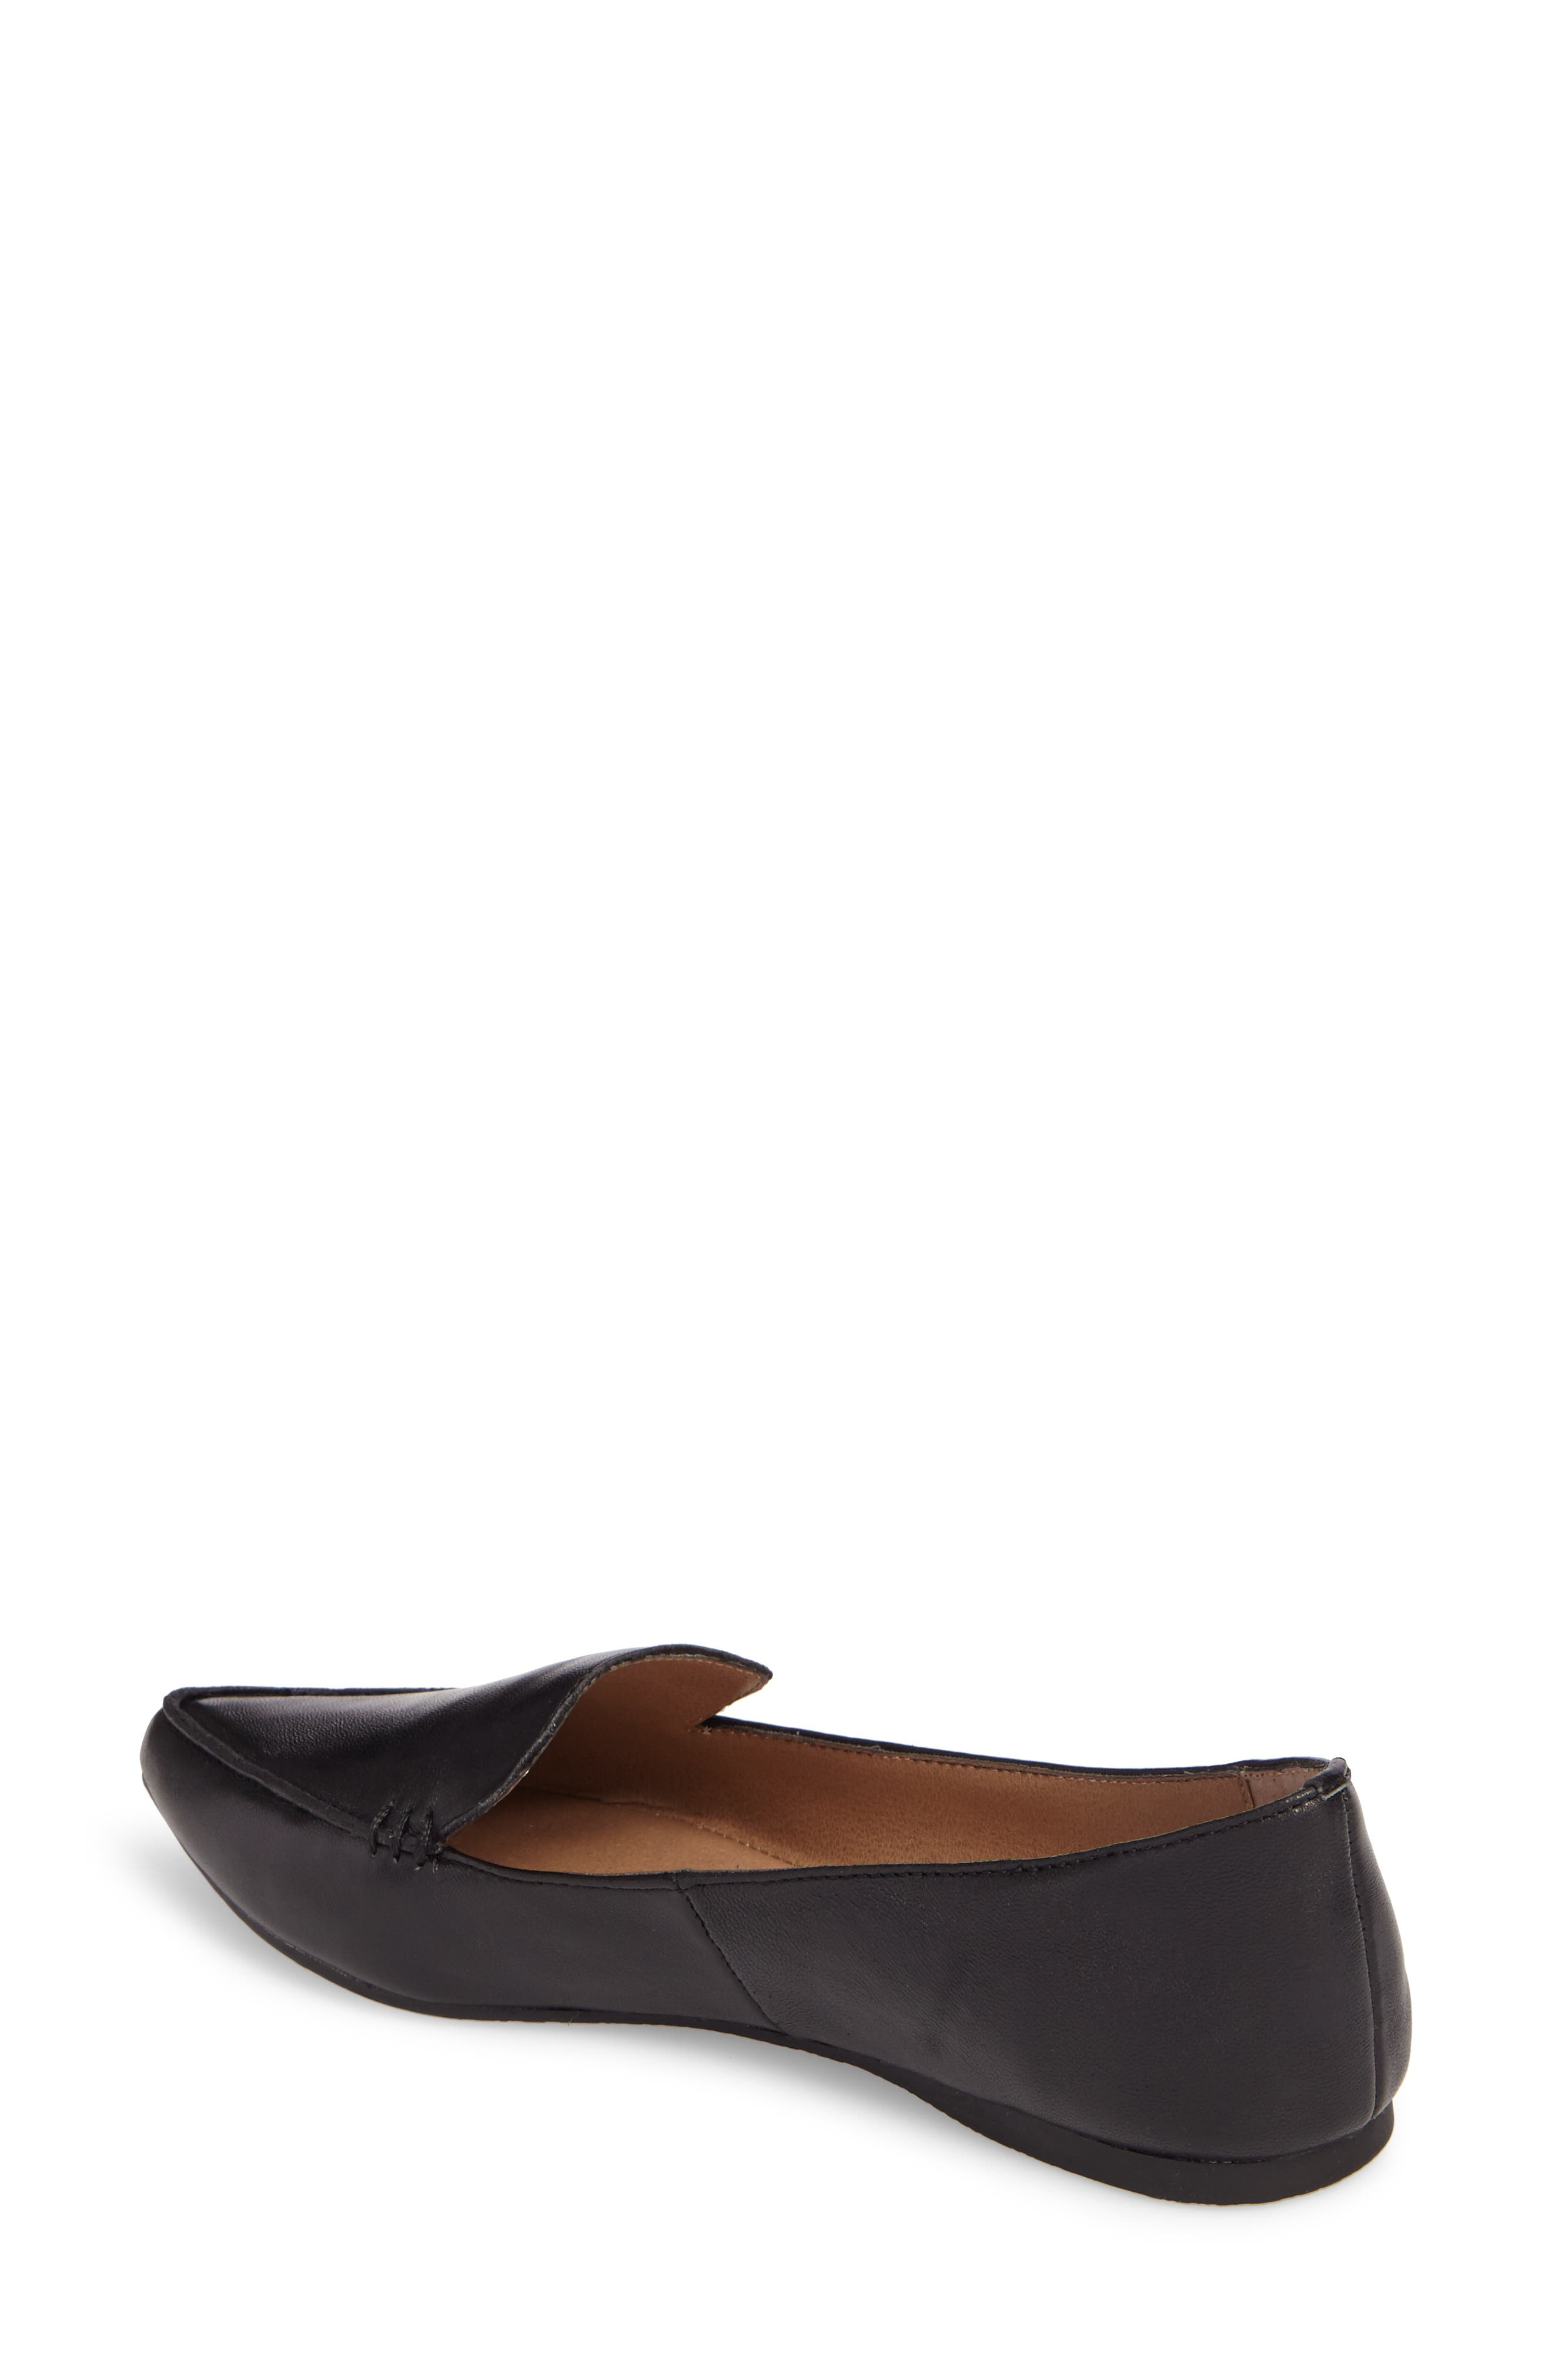 Feather Loafer Flat,                             Alternate thumbnail 2, color,                             BLACK LEATHER